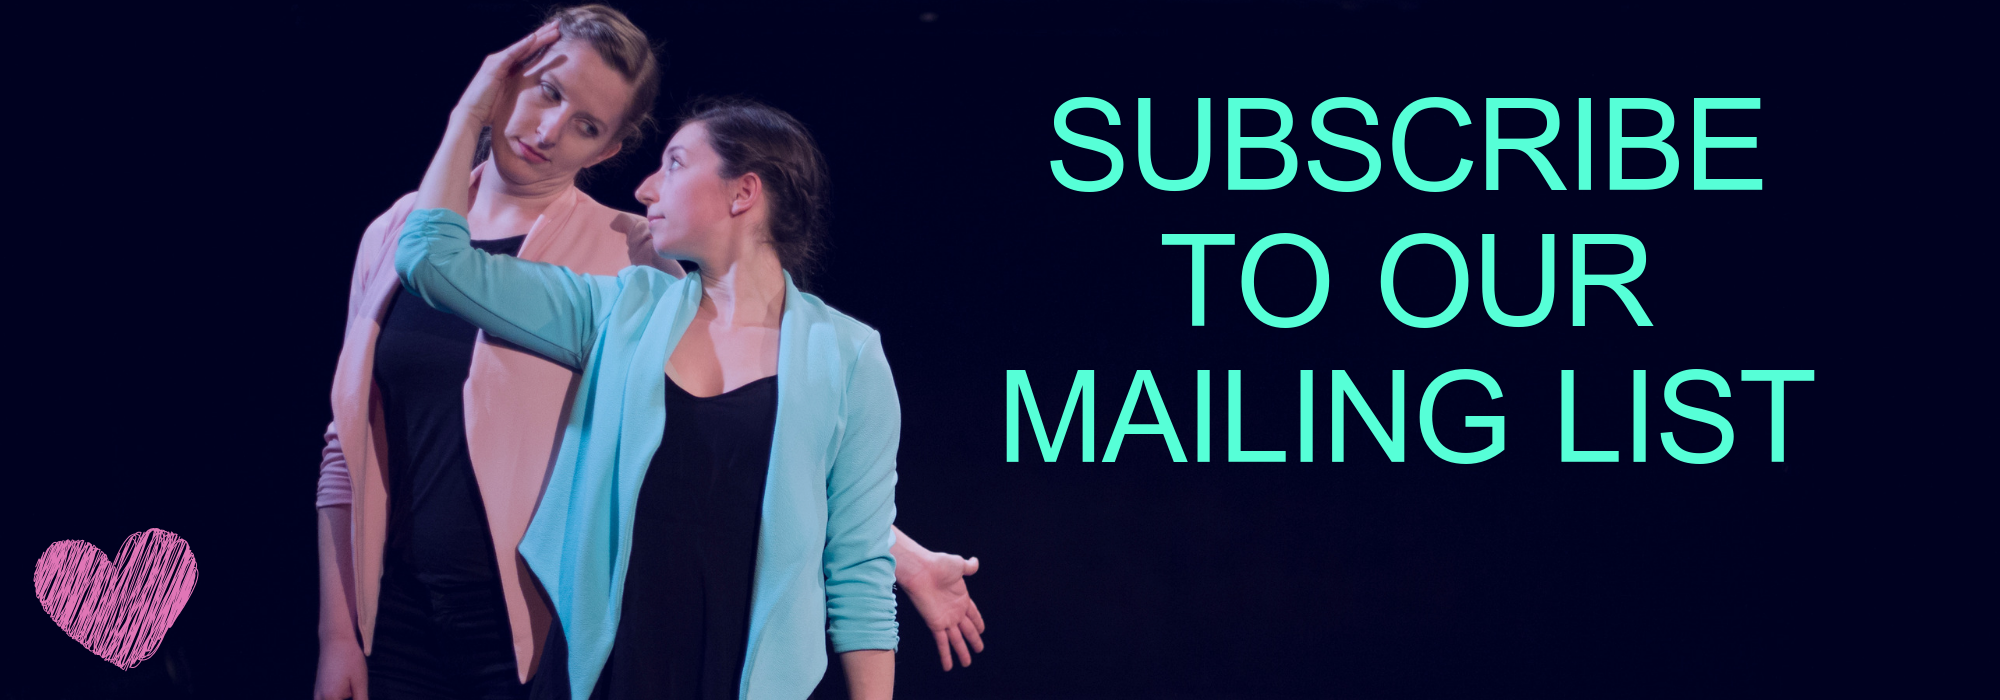 SUBSCRIBE TO OUR MAILING LIST (5).png